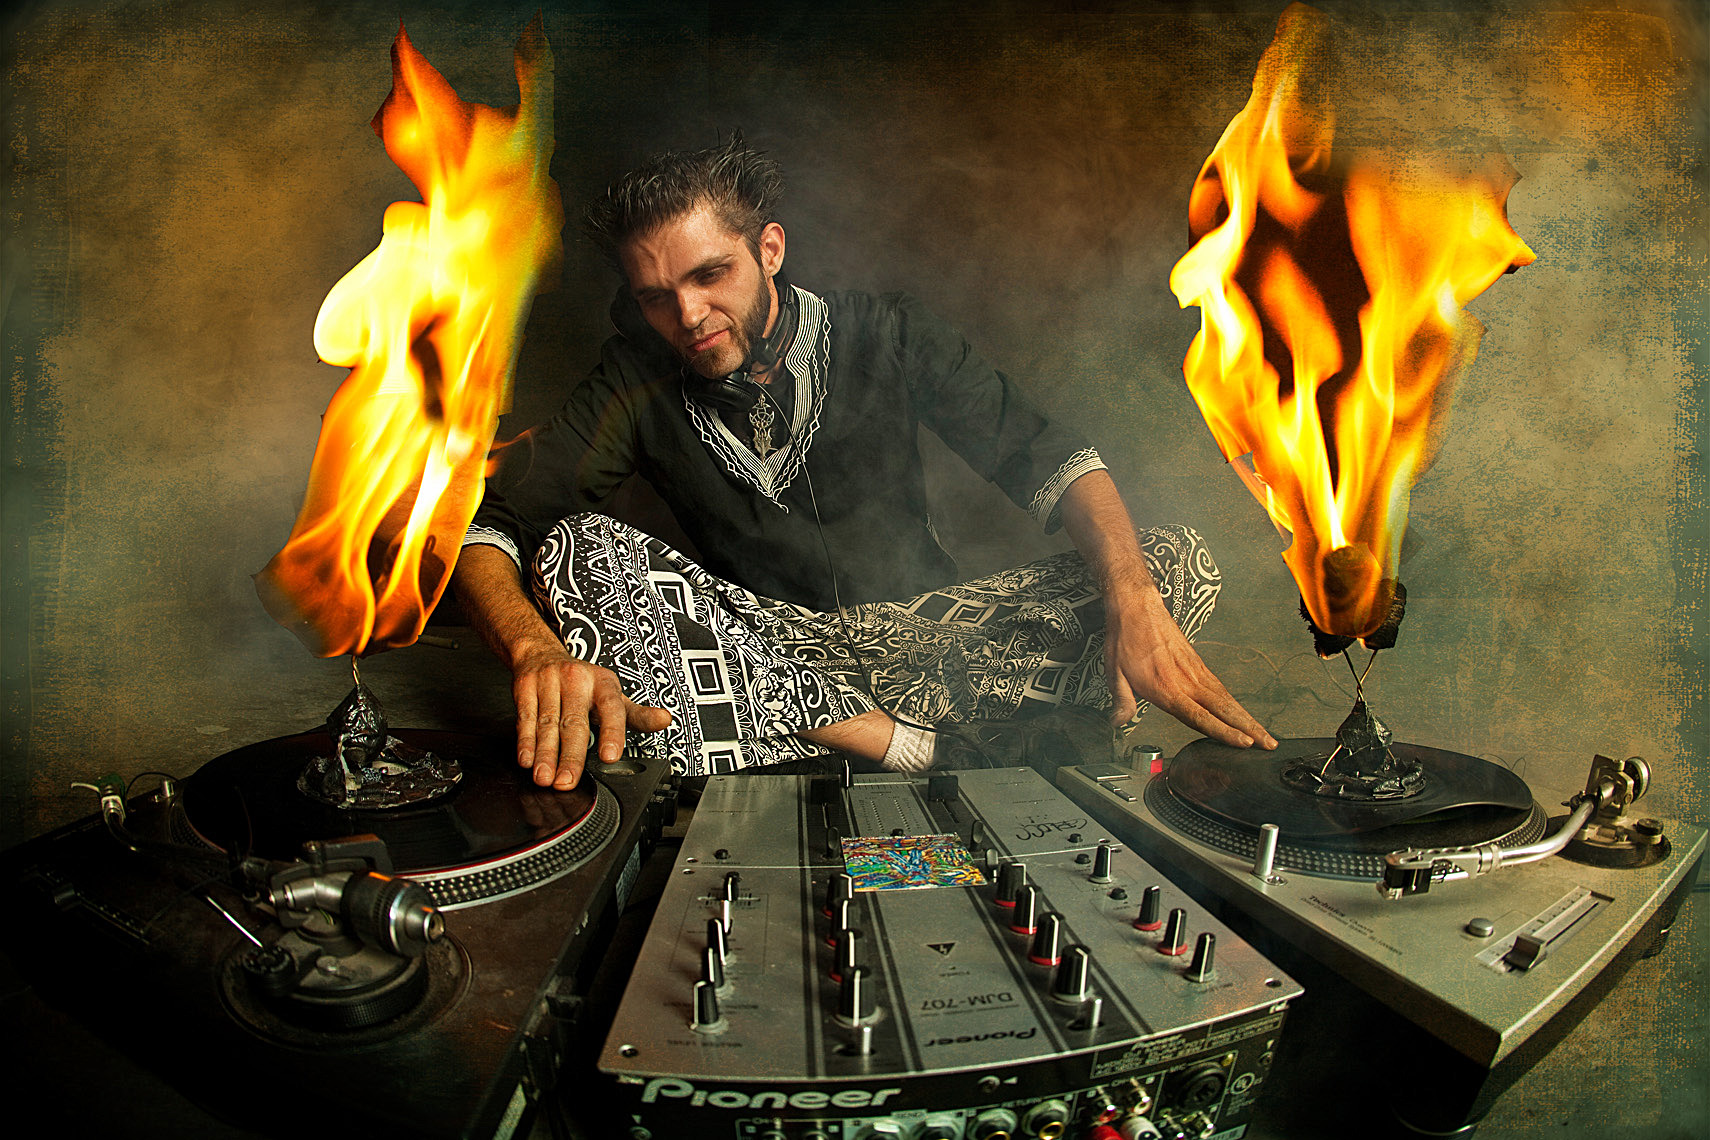 gritty textured DJ spinning fire Conceptual